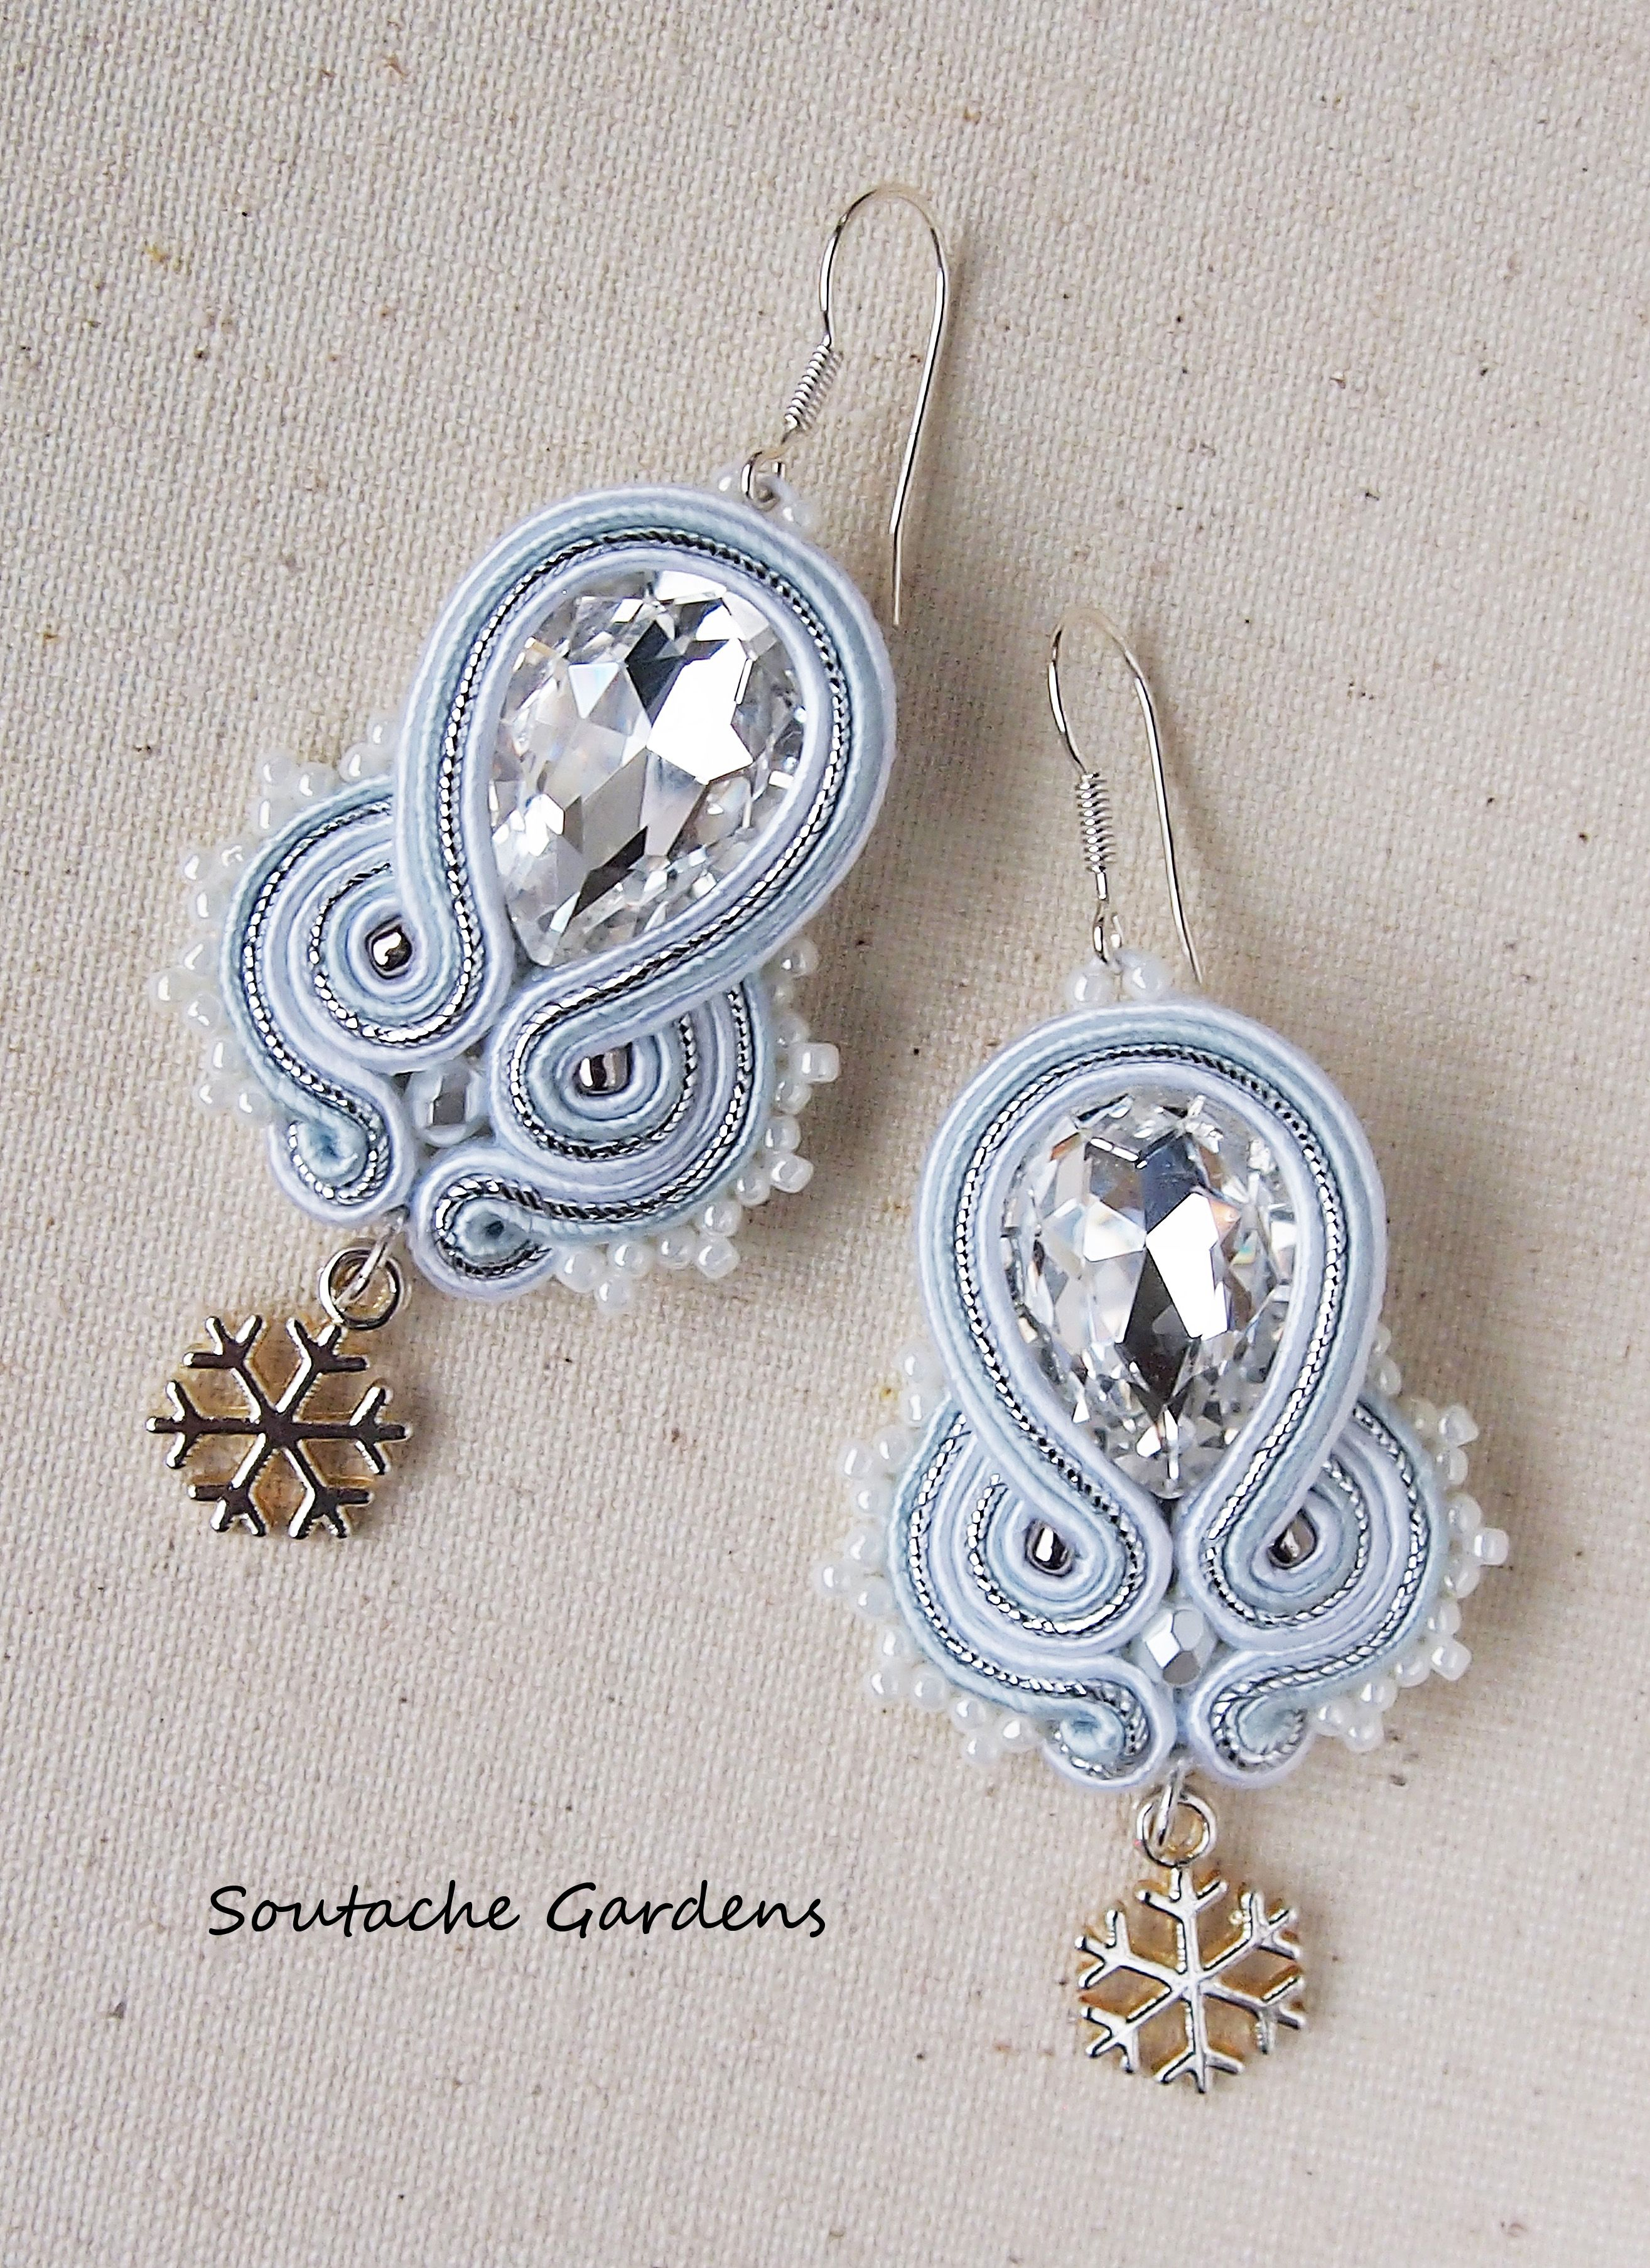 papercraft silk designs pinterest crafty my jewelry thread by accessories homemade crafts jewerly pin ramapriya jayaraman paint beads on hair diy quilling earrings paper